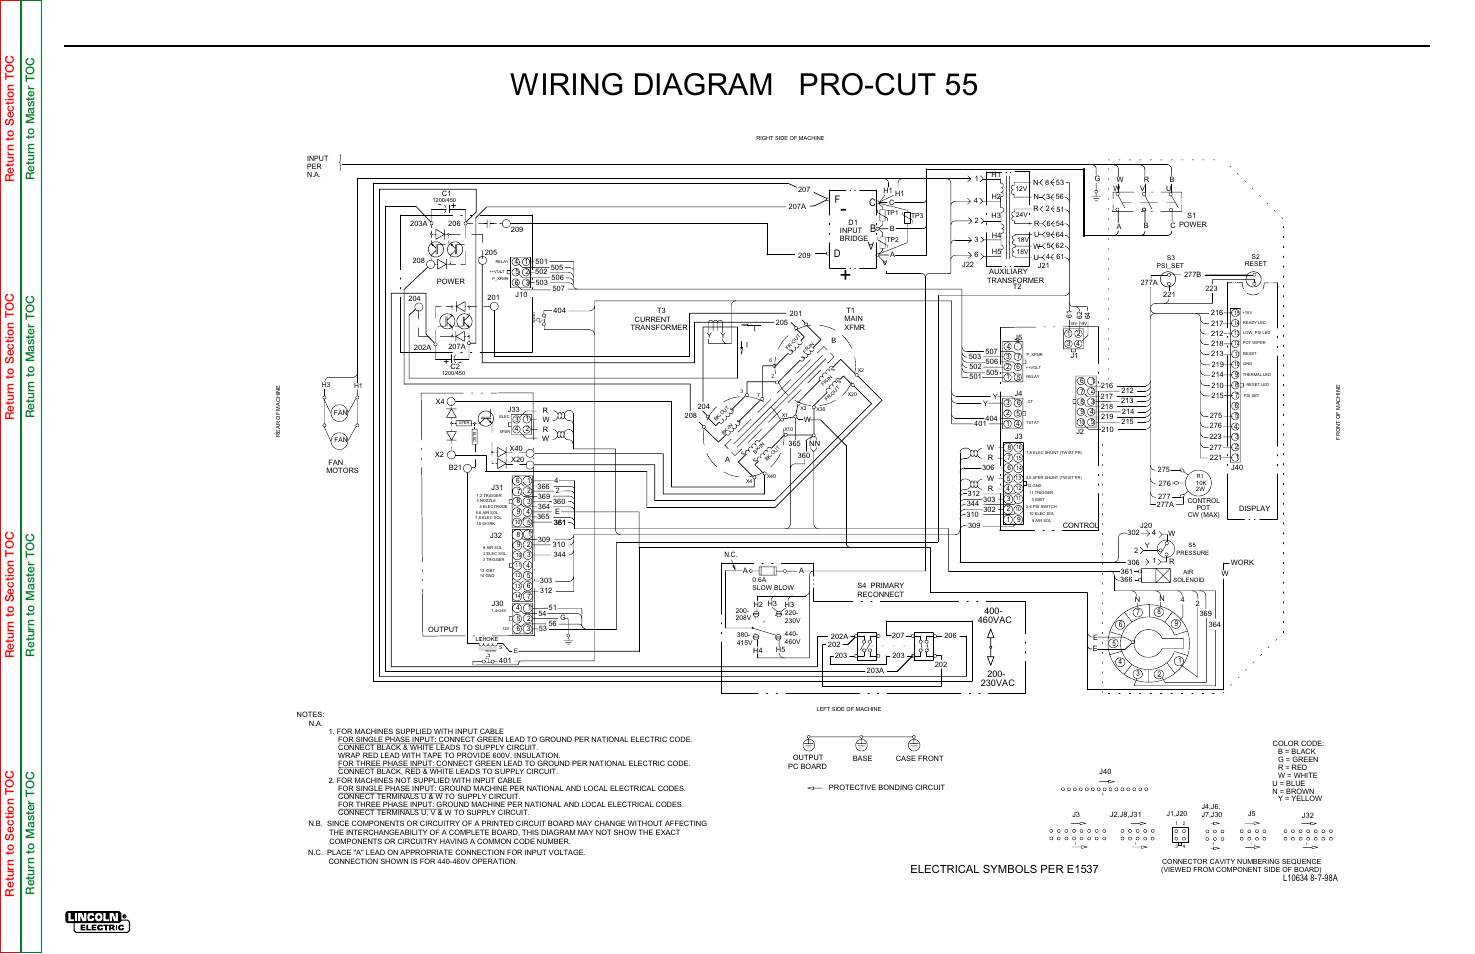 Wiring Diagram Pro-cut 55  Electrical Diagrams  Wiring Diagram